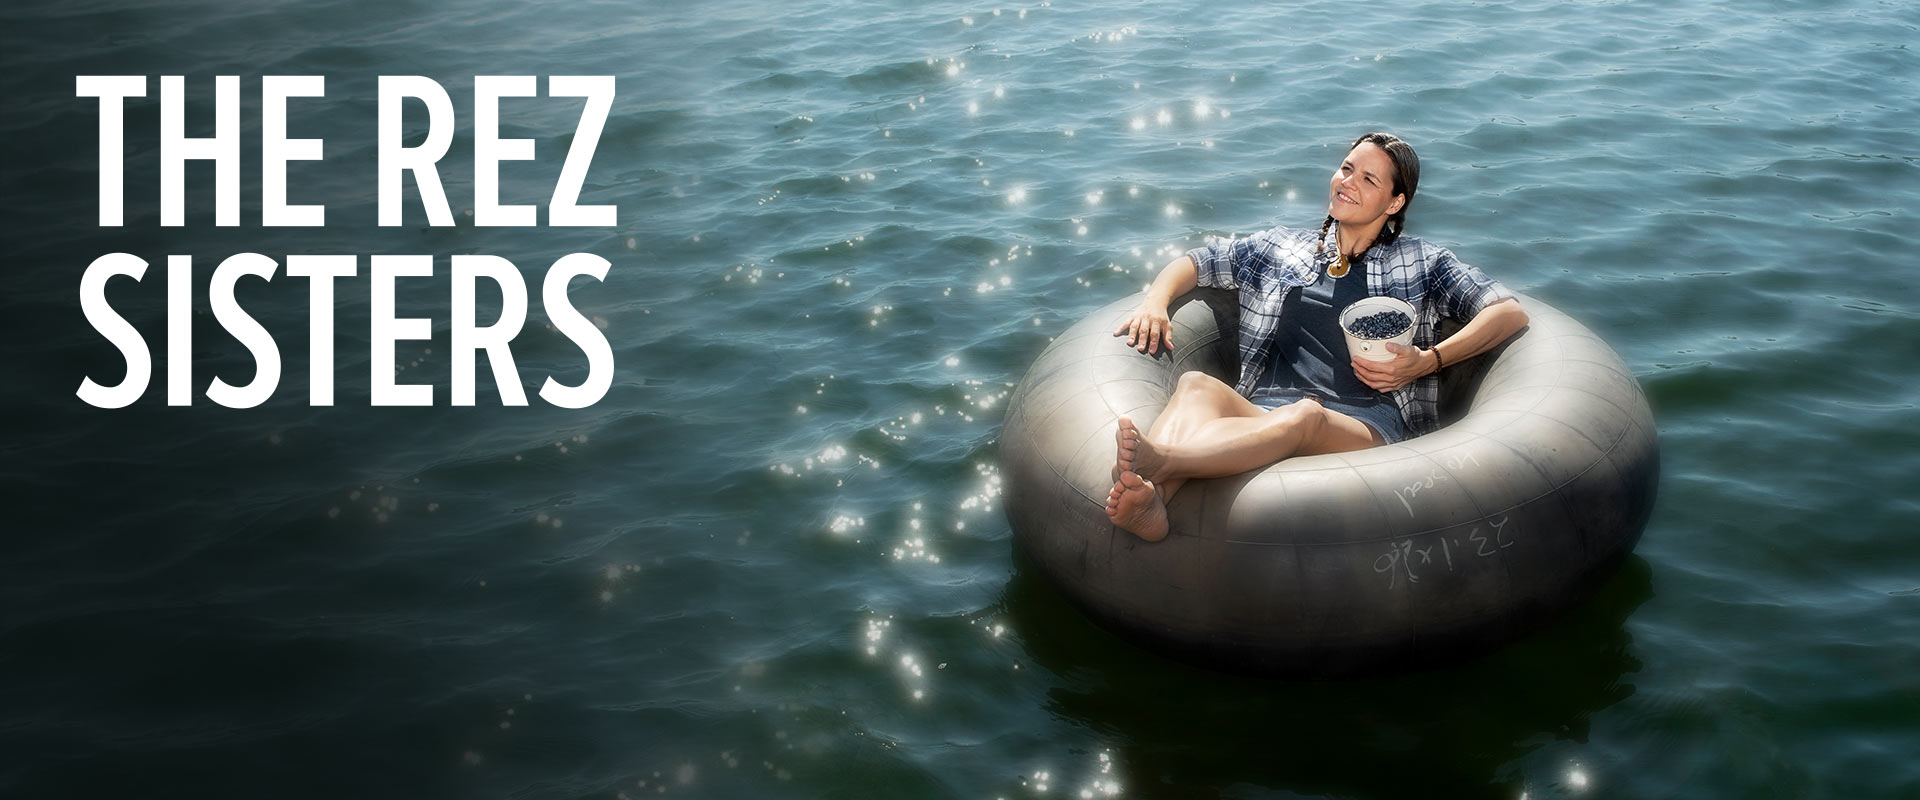 Woman, sitting in an inner tube on the water, eating blueberries from a bucket.